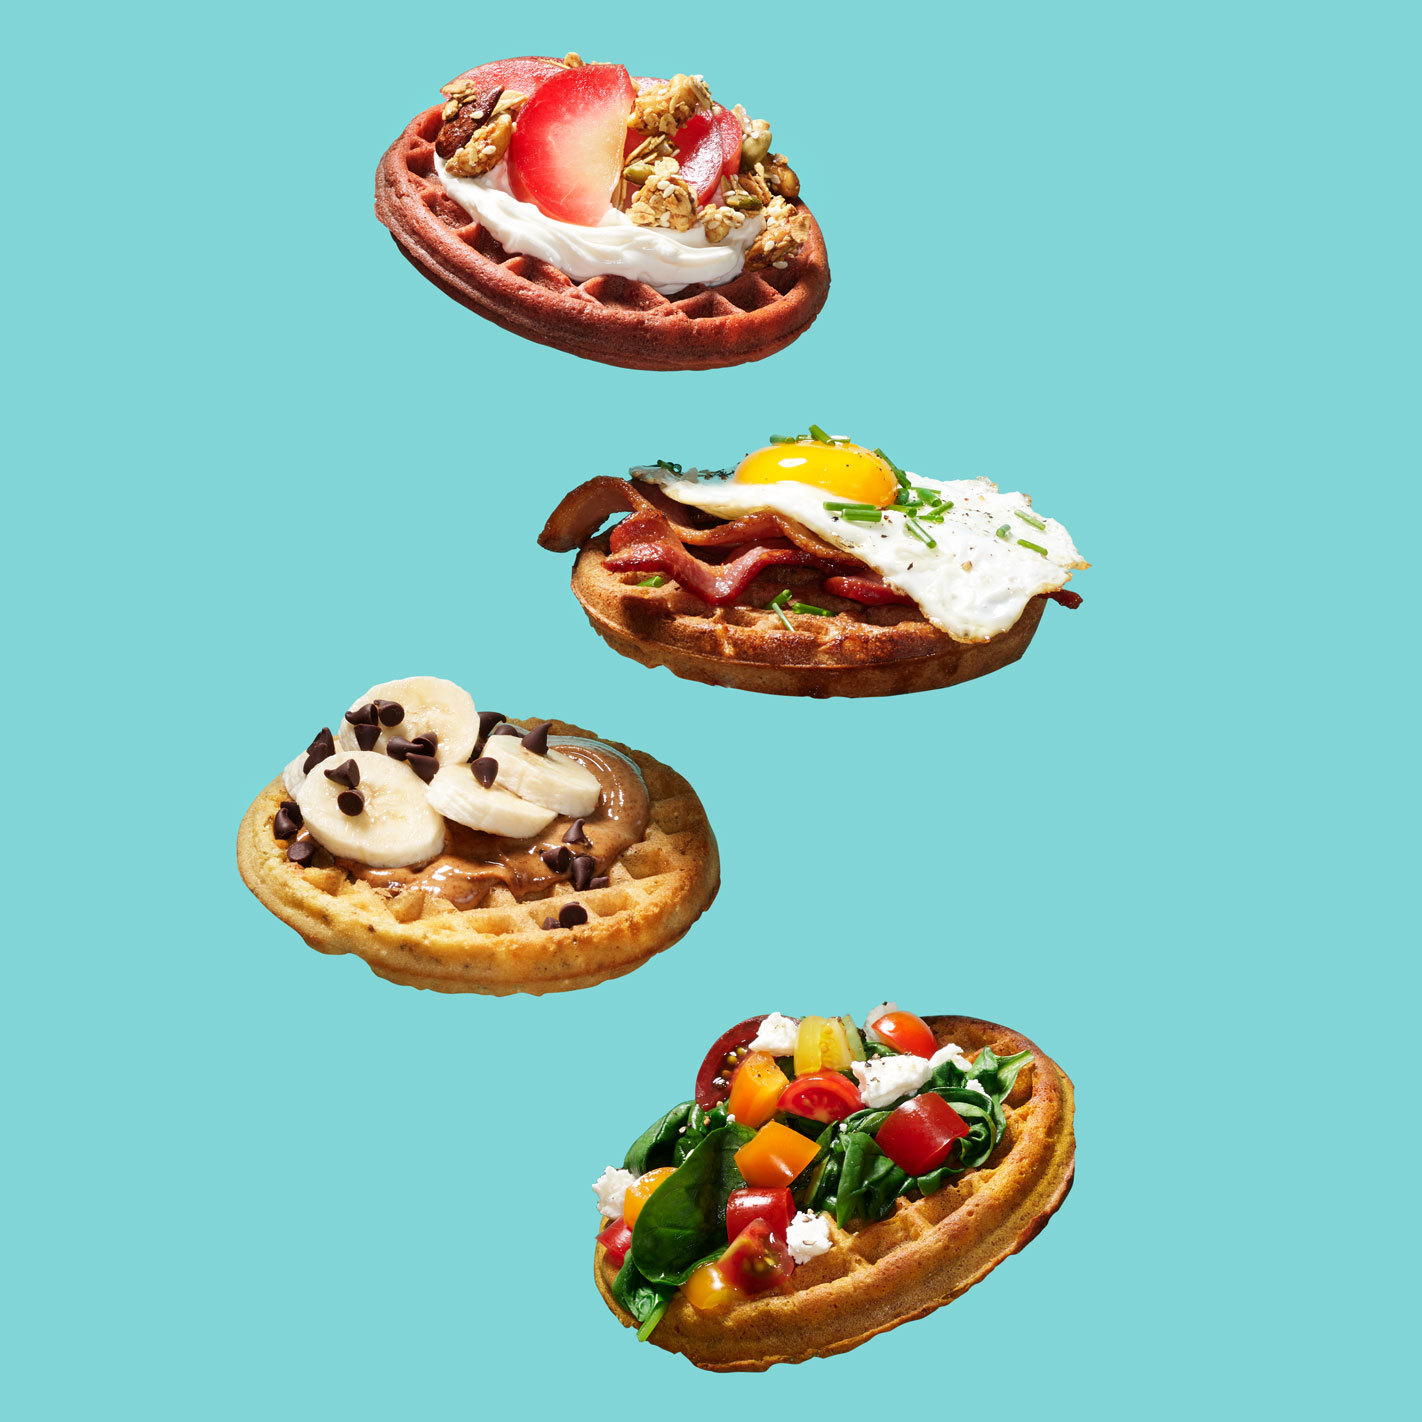 4 waffles with various toppings